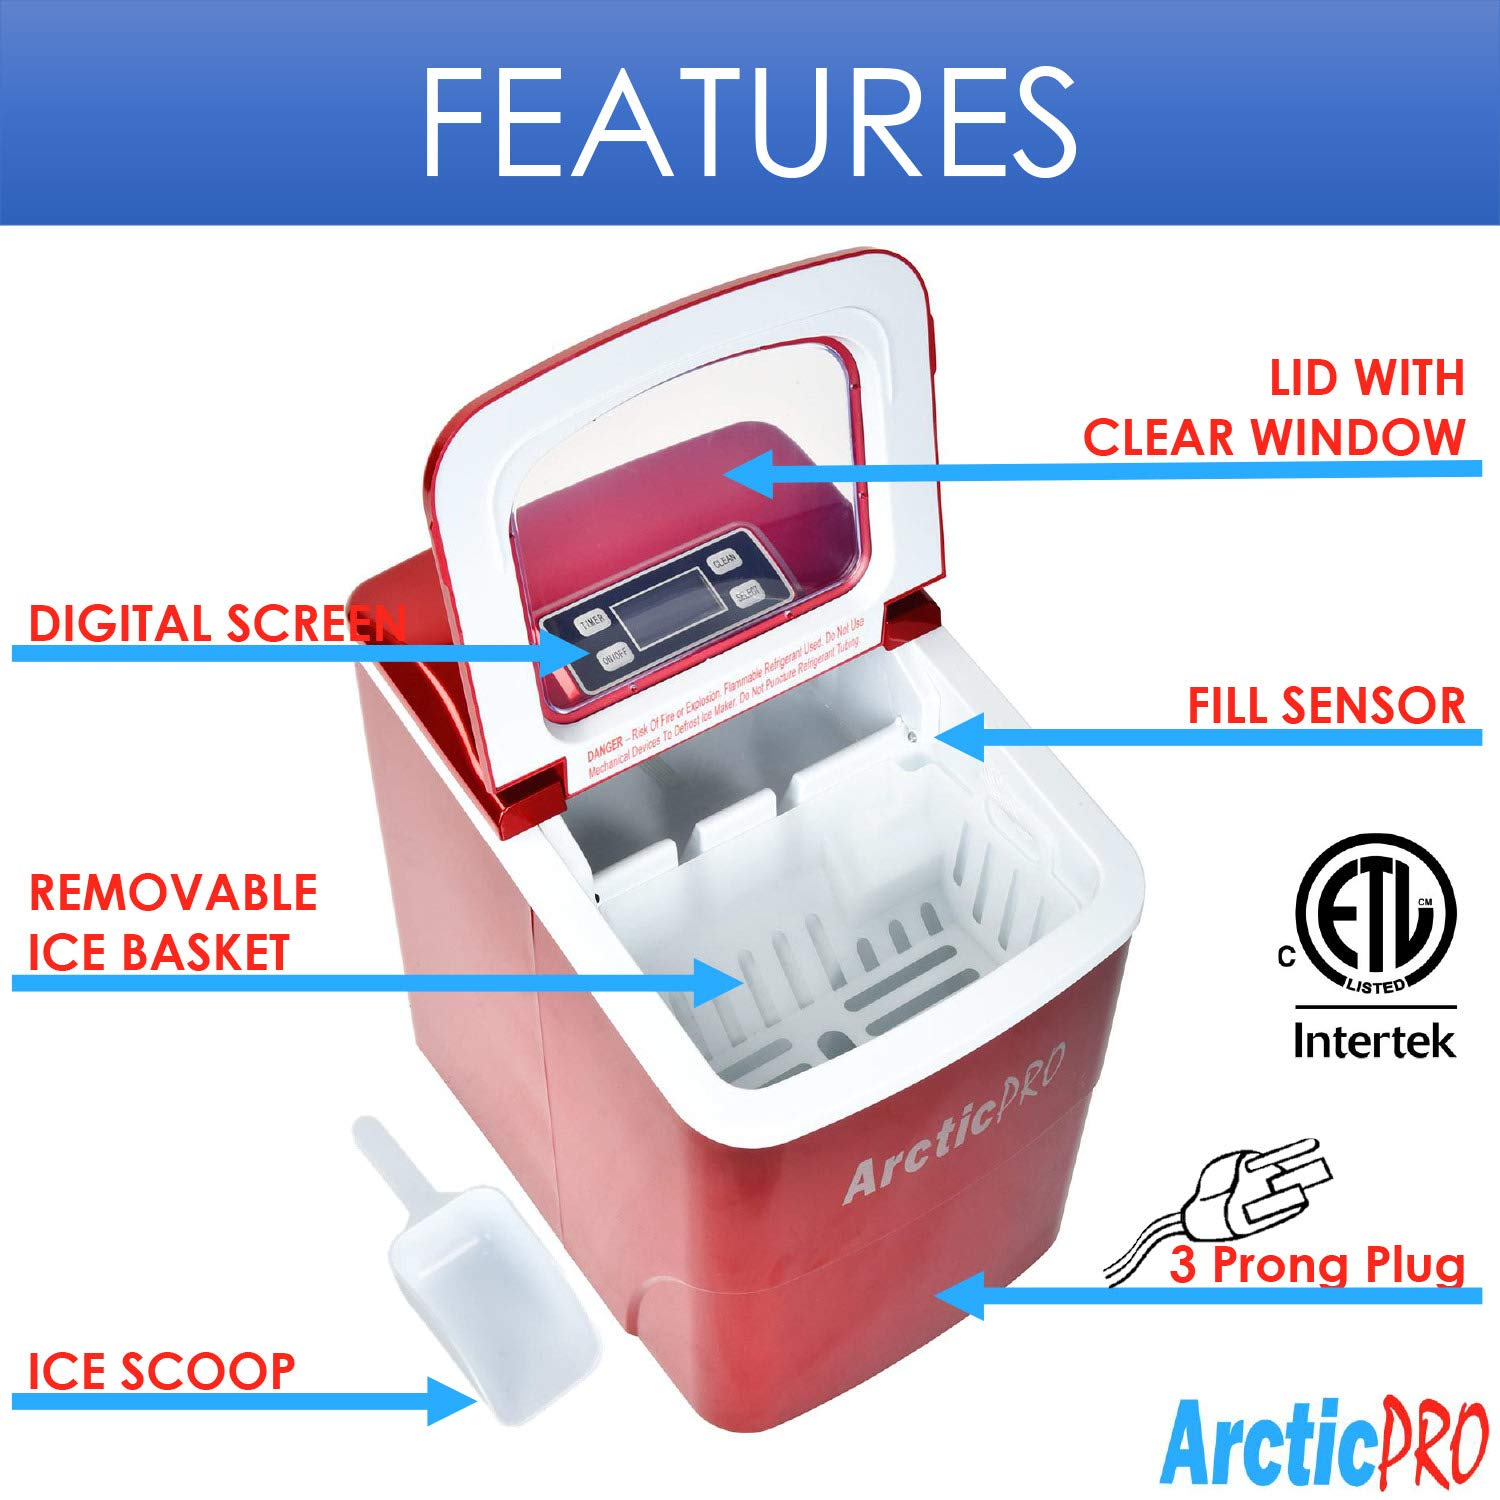 PORTABLE DIGITAL ICE MAKER MACHINE by Arctic-Pro with Ice Scoop Tailgating Bars Great for Kitchens First Ice in 8 Minutes 26 Pounds Daily Red Parties Small//Large Cubes 11.5x8.7x12.5 Inches